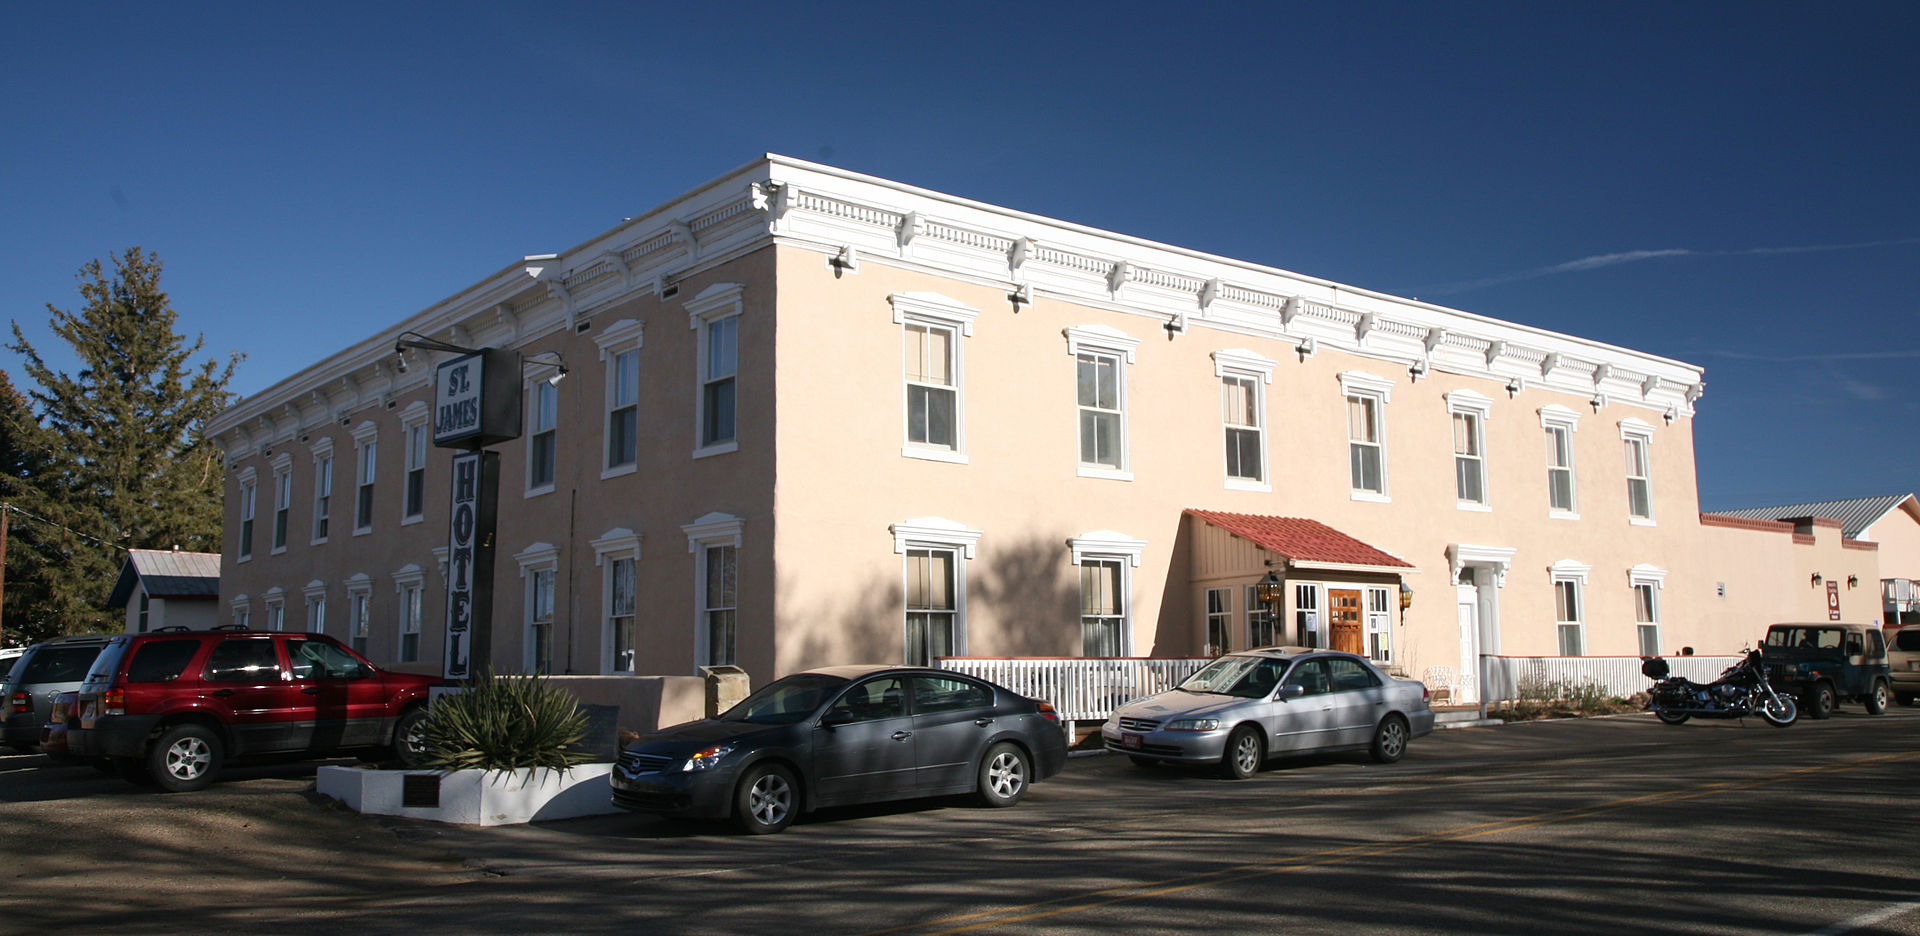 Historic St. James Hotel in Cimarron, New Mexico